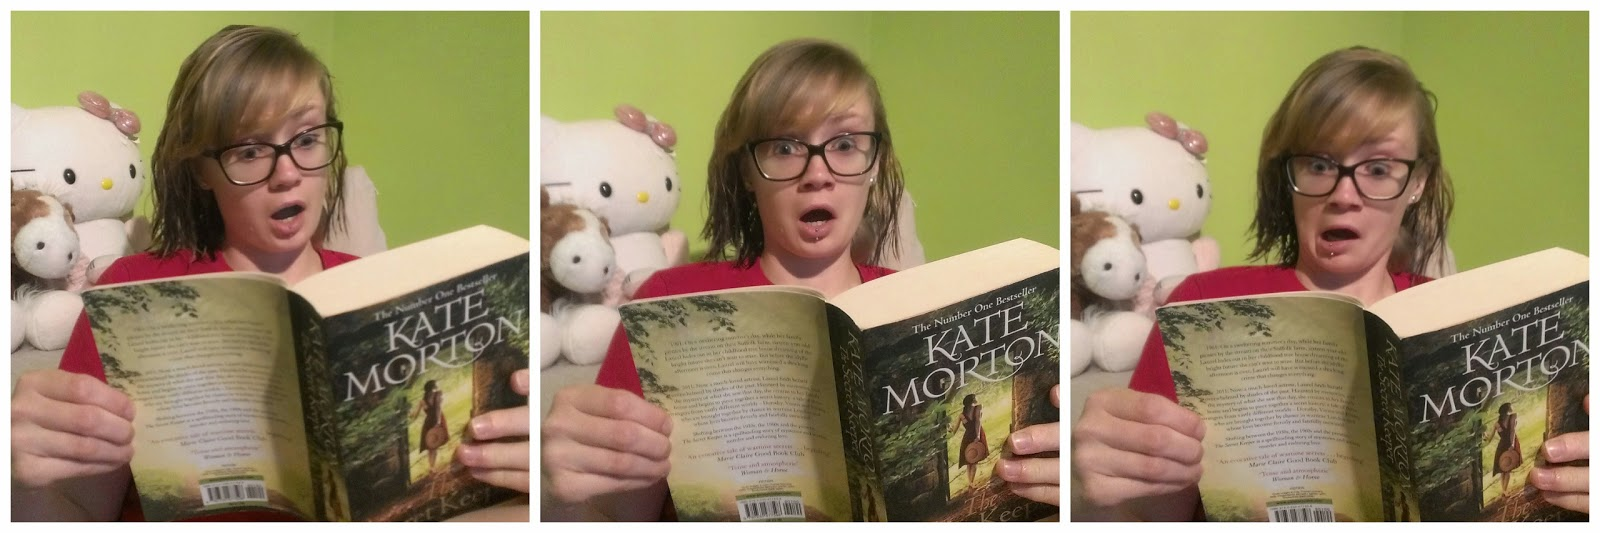 Kate Morton The Secret Keeper review